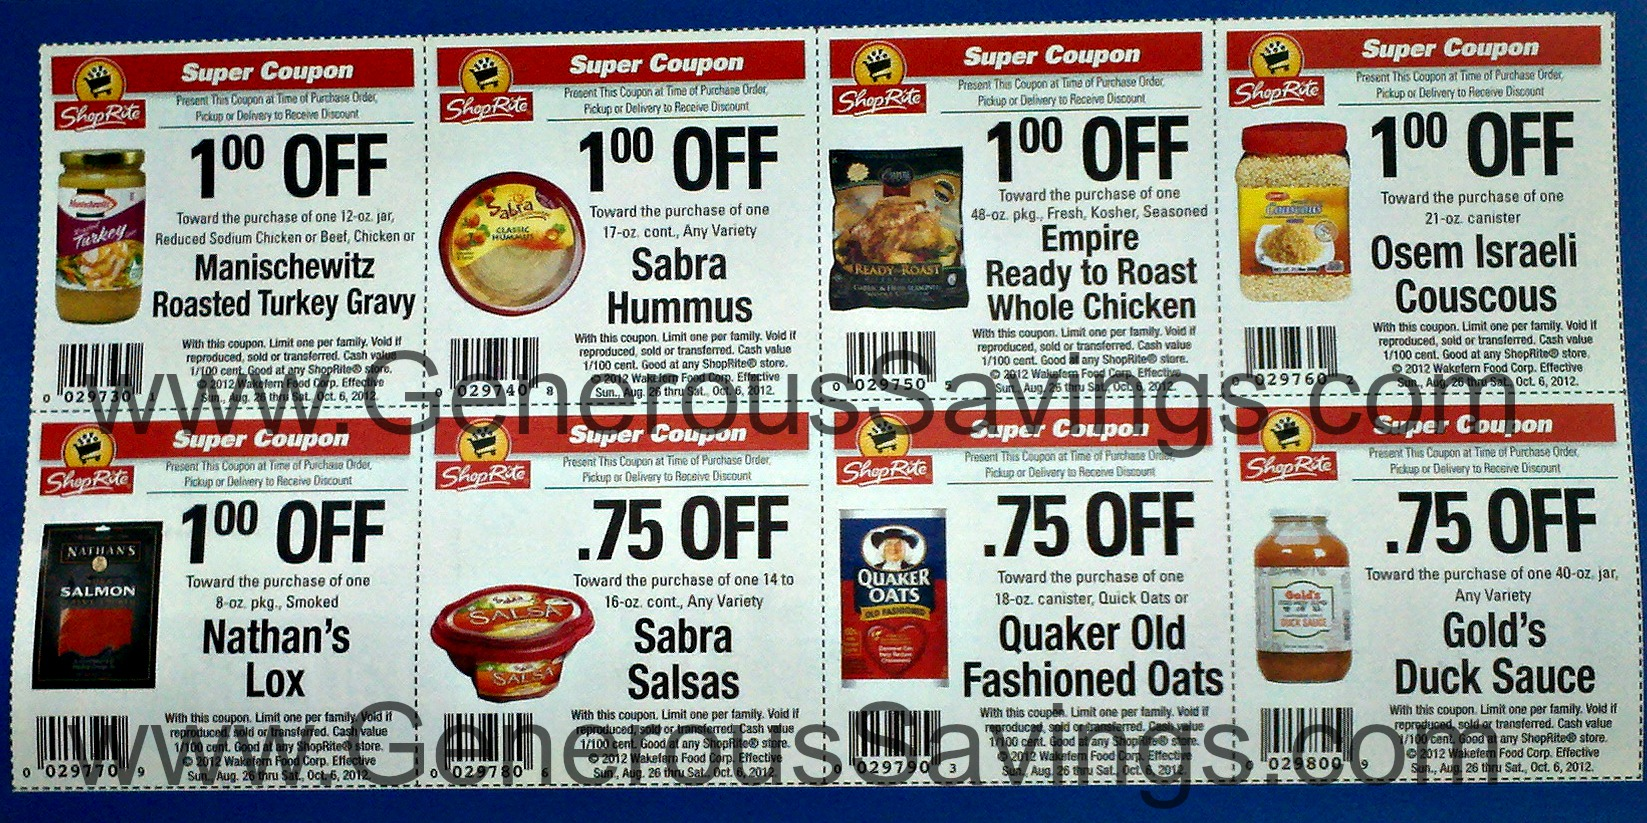 Shoprite coupons in store